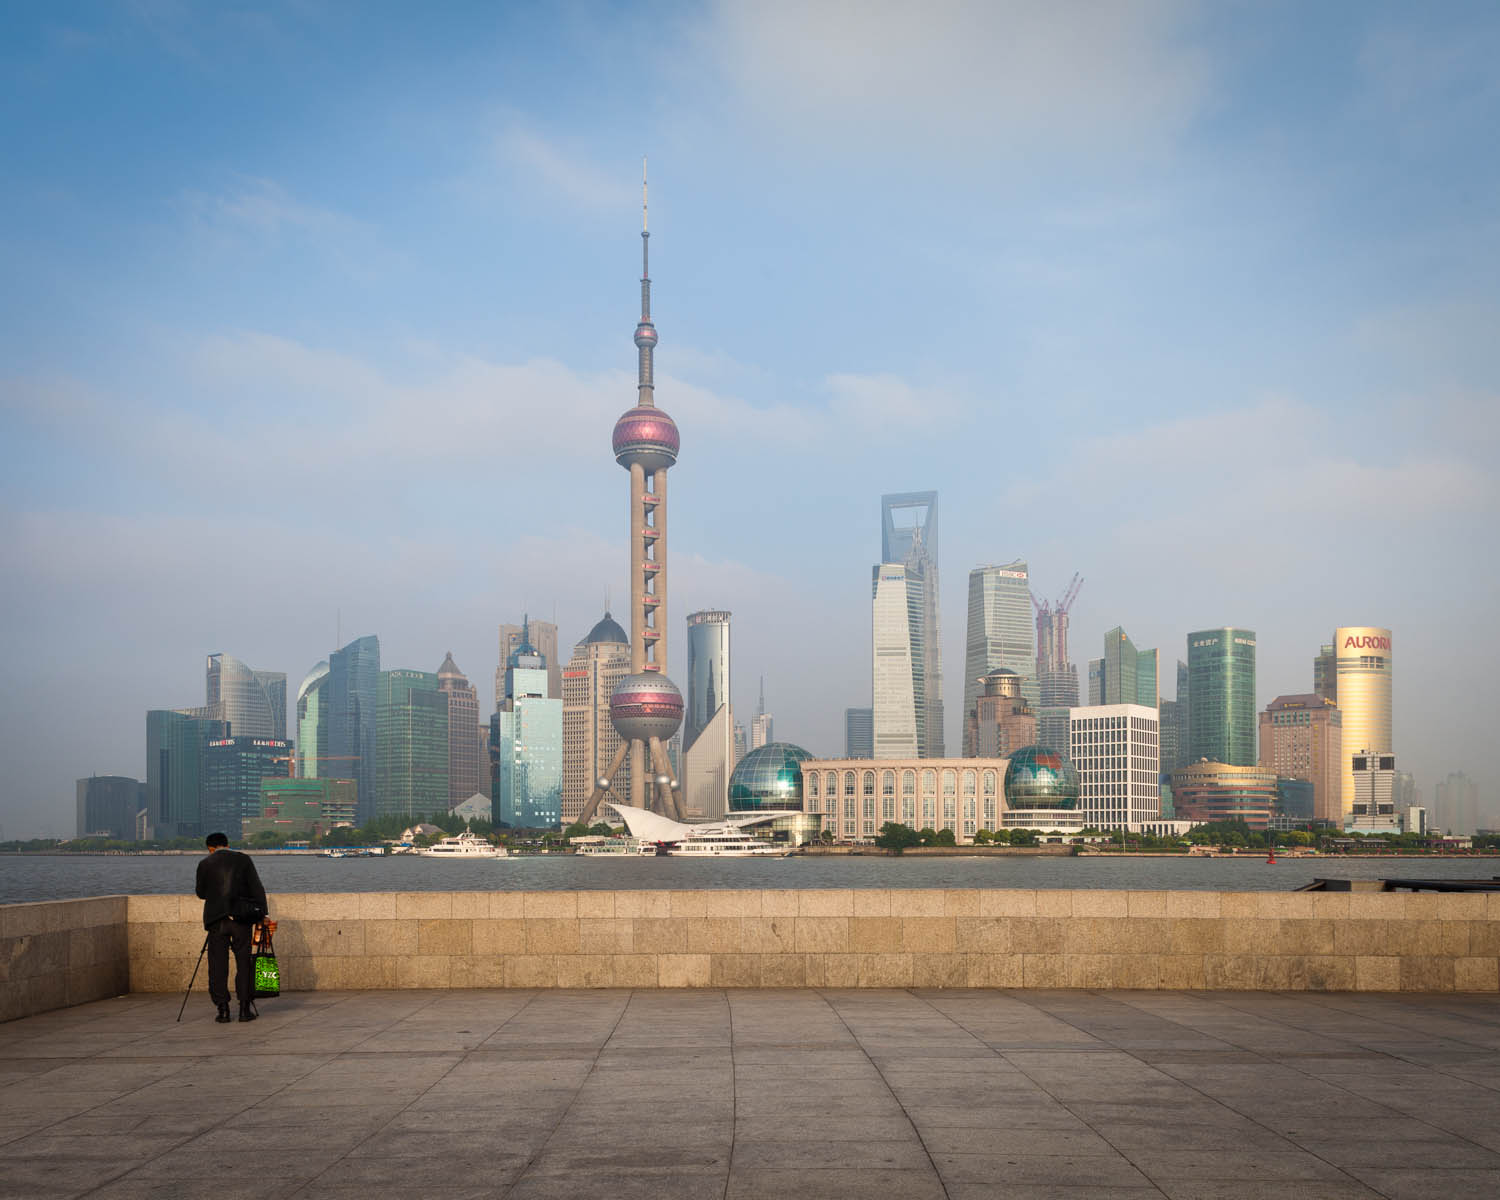 Photo: When I finally arrived at this stunning view oF Shanghai, I wanted to get a clear unobstructed view of thE skyline but there were so many people around. Instead, I chose to wait patiently until there weren't a group of people in the view. But then this photographer set up to take the same angle and it just felt like that was THE shot I was actually waiting for. I love how he shows the scale of the towering skyline.